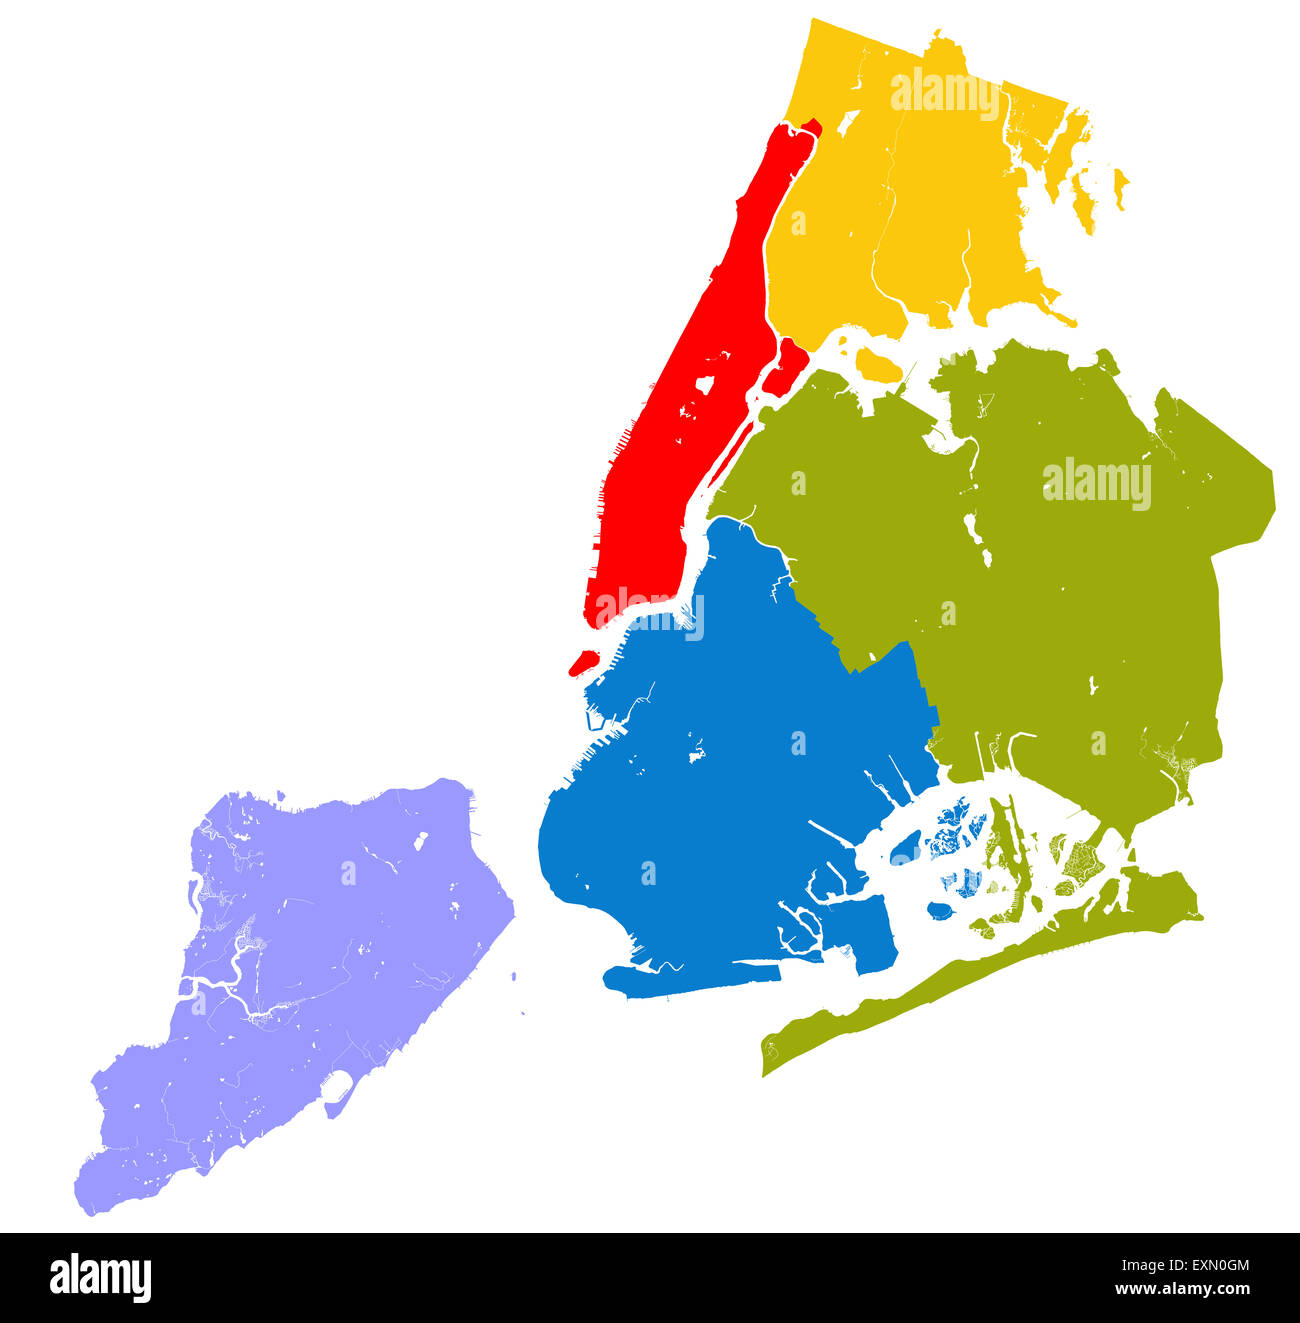 Map Of New York Five Boroughs.Five Boroughs Of New York City Outline Map Stock Photo